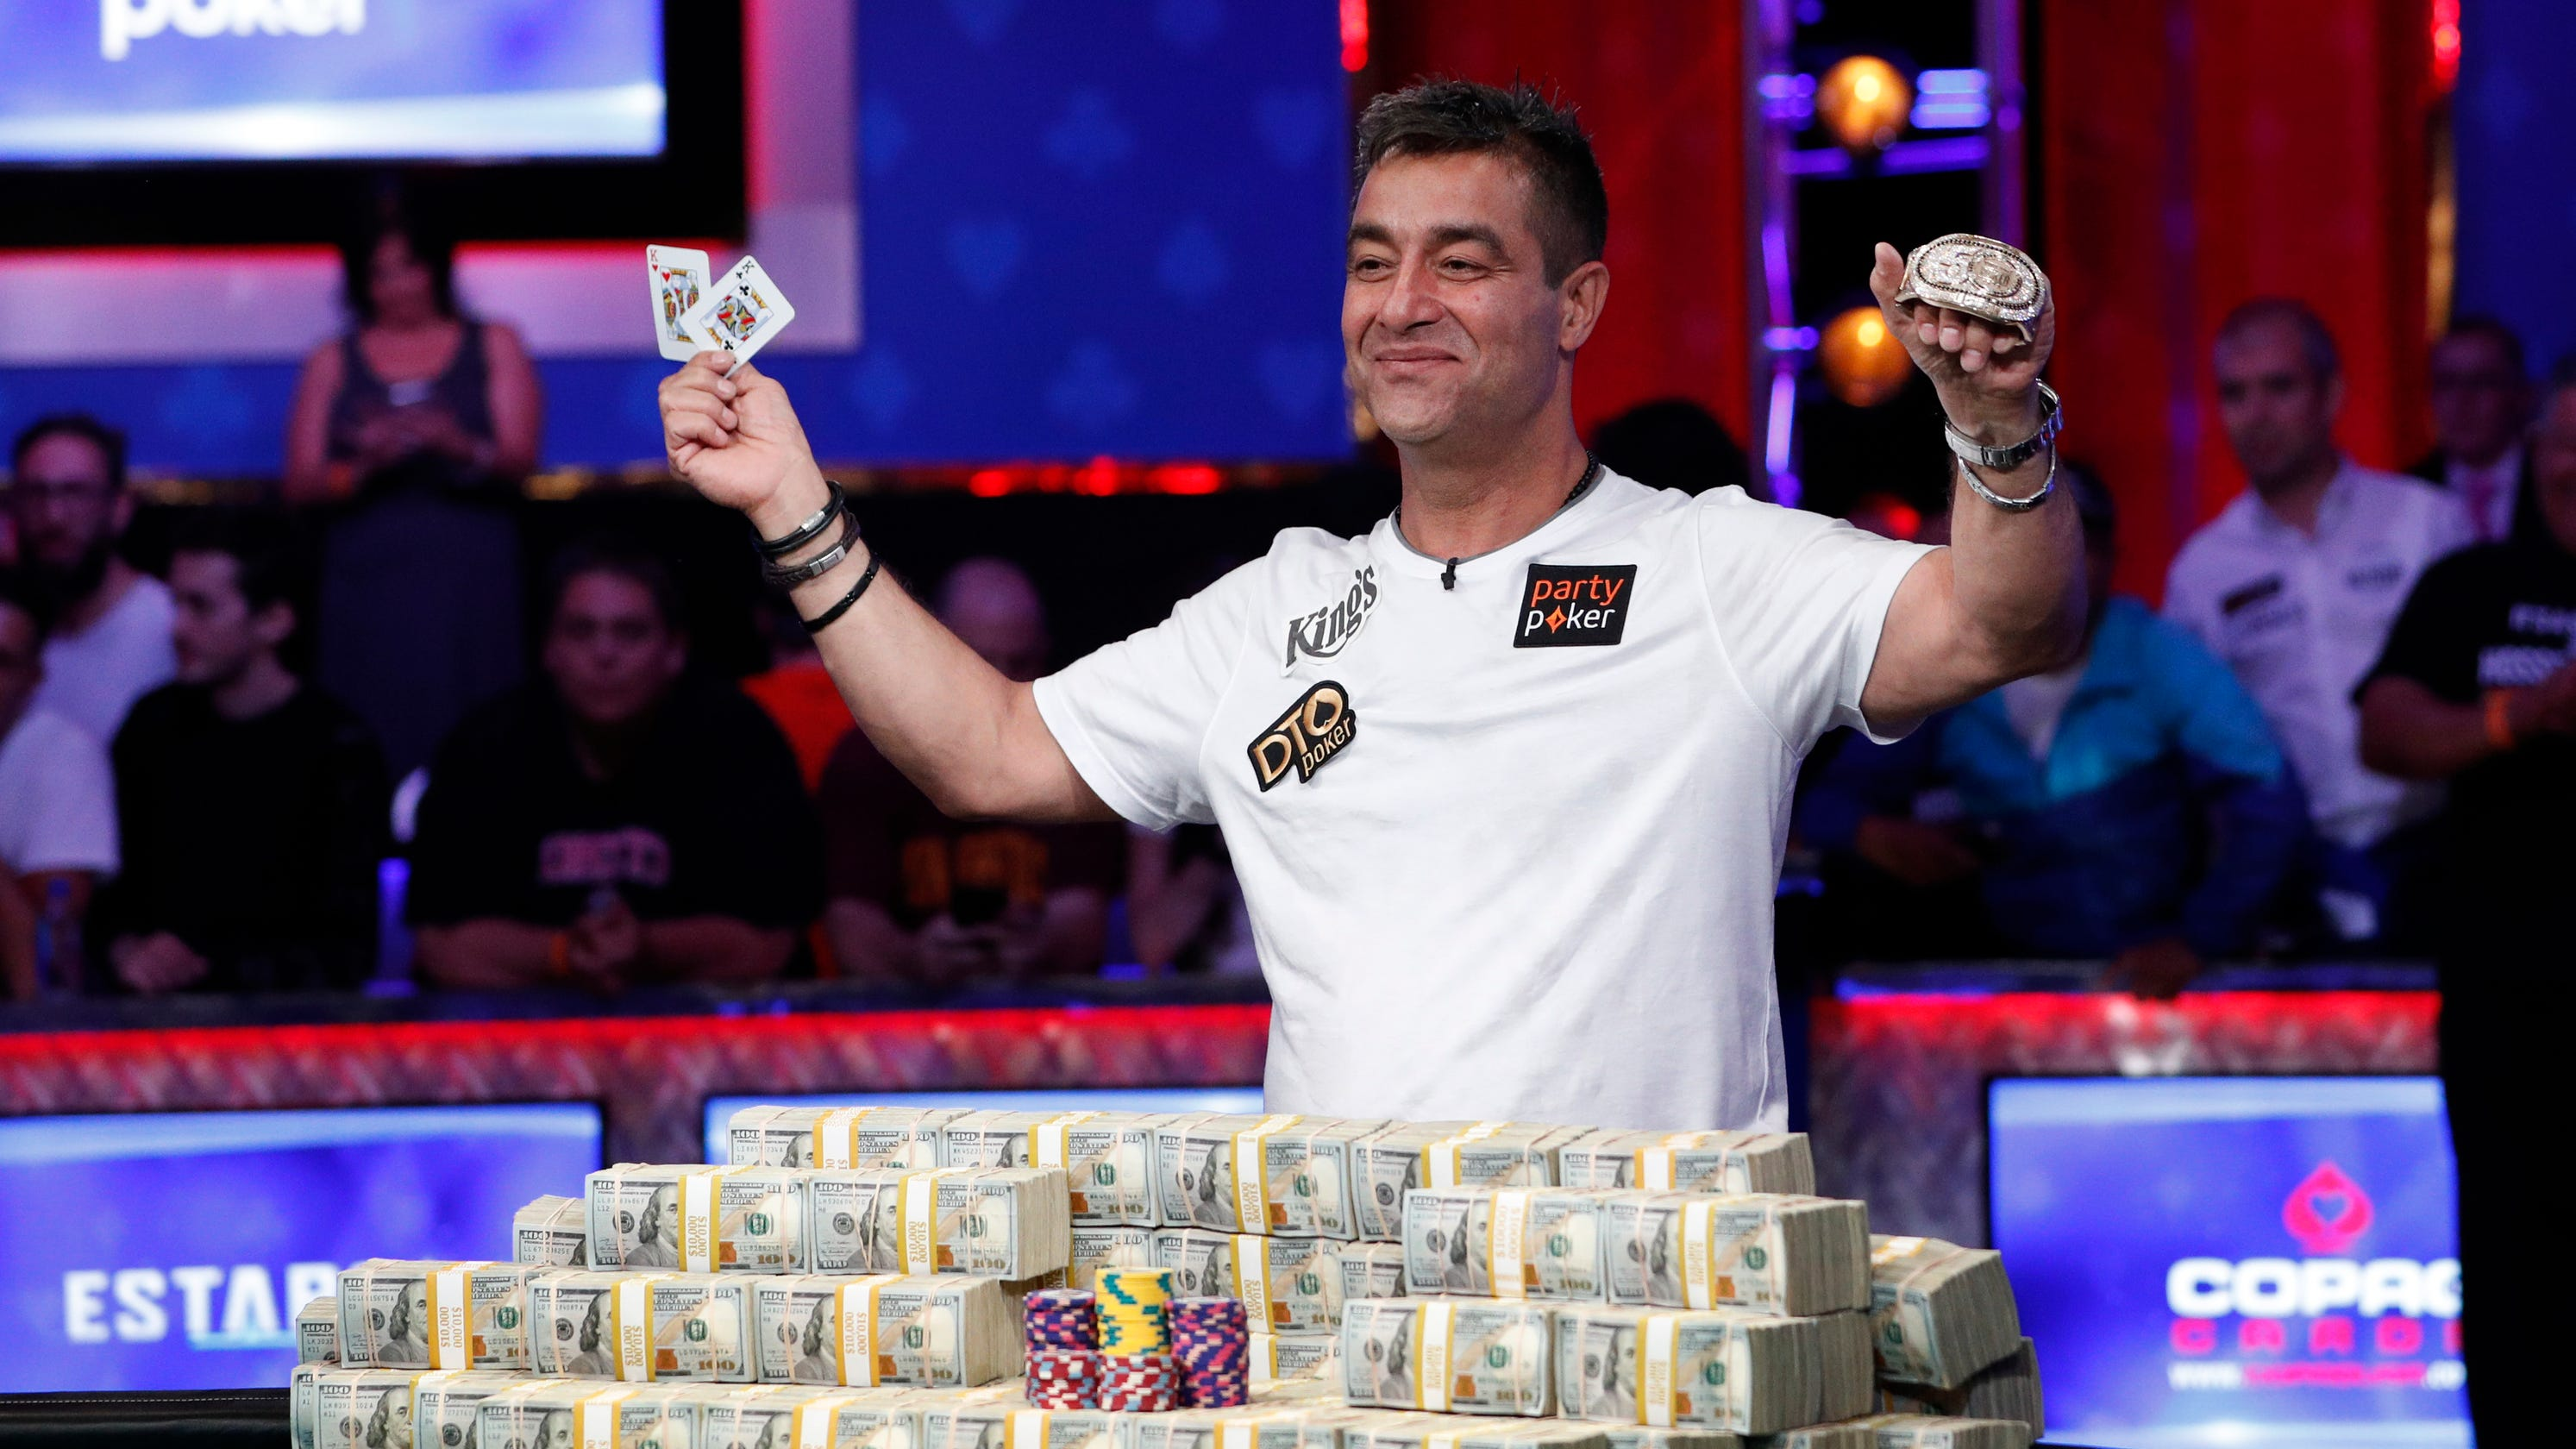 Hossein Ensan wins $10 million in prize money for World Series of Poker victory